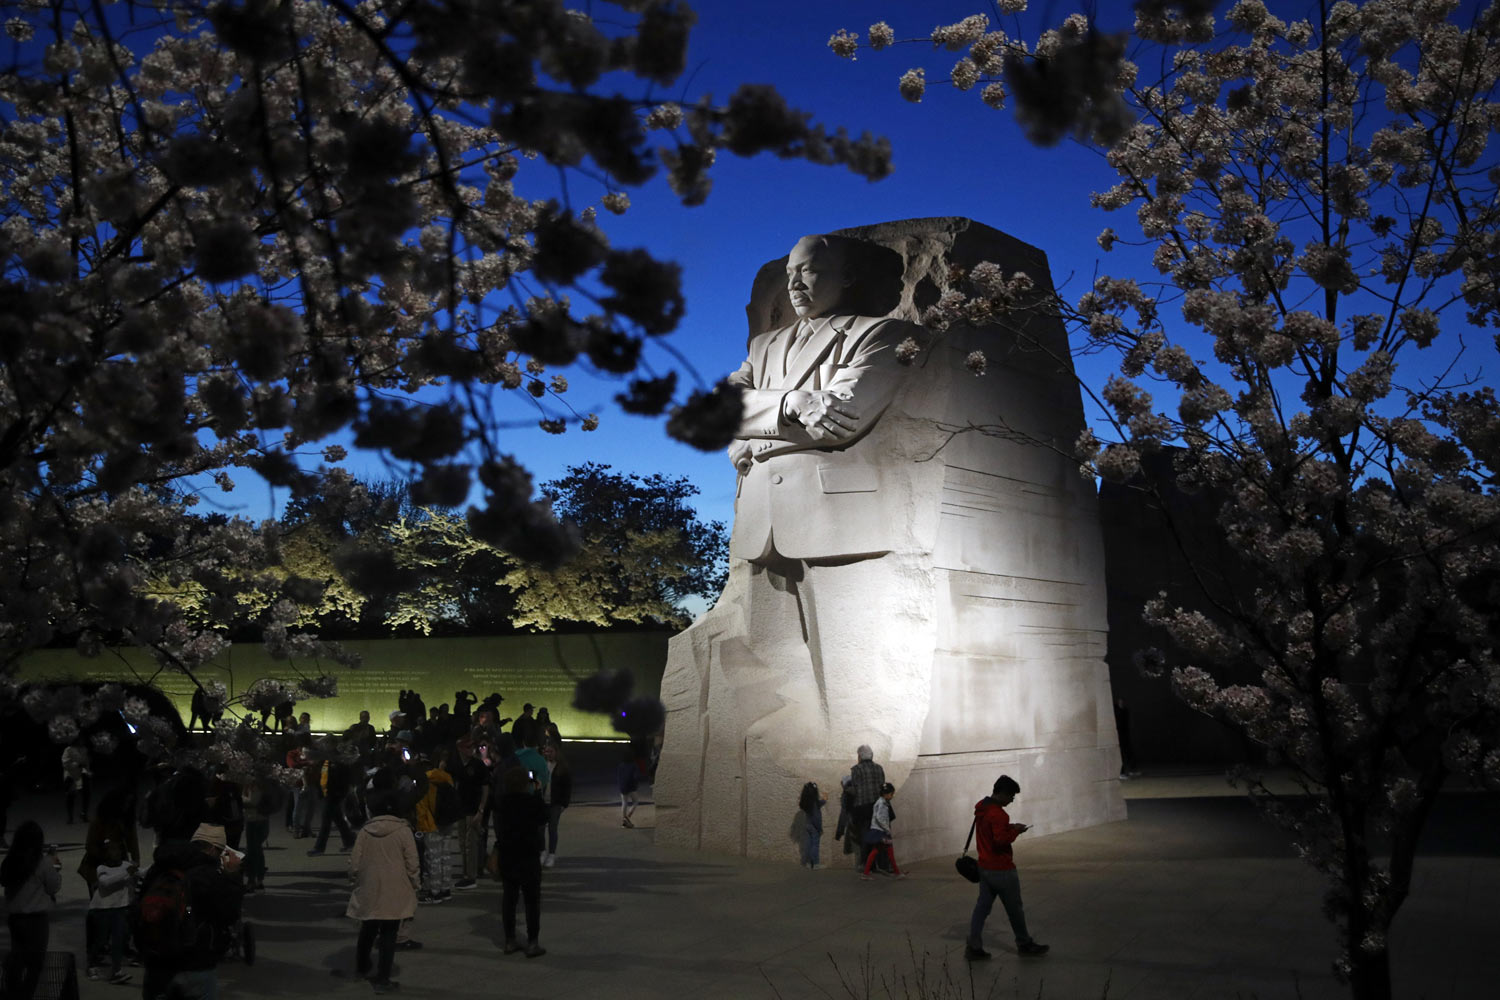 Cherry blossom trees surround the Martin Luther King, Jr., Memorial at dusk, Wednesday, April 3, 2019, in Washington. (AP Photo/Patrick Semansky)